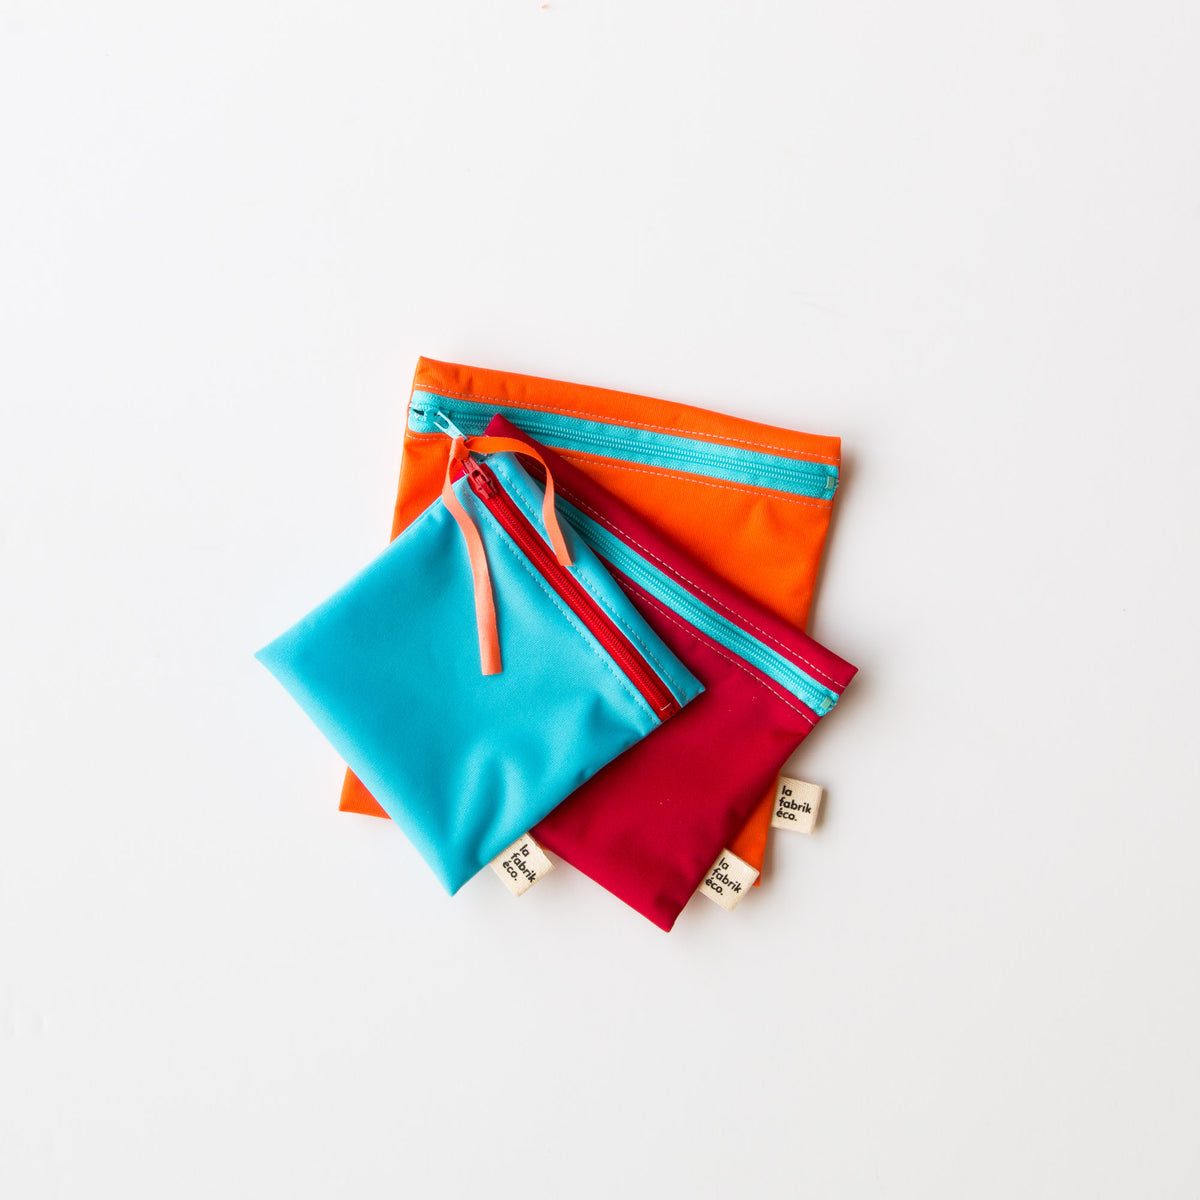 Reusable Snack & Sandwich Bags Trio - Food Safe & Eco-friendly - Sold by Chic & Basta